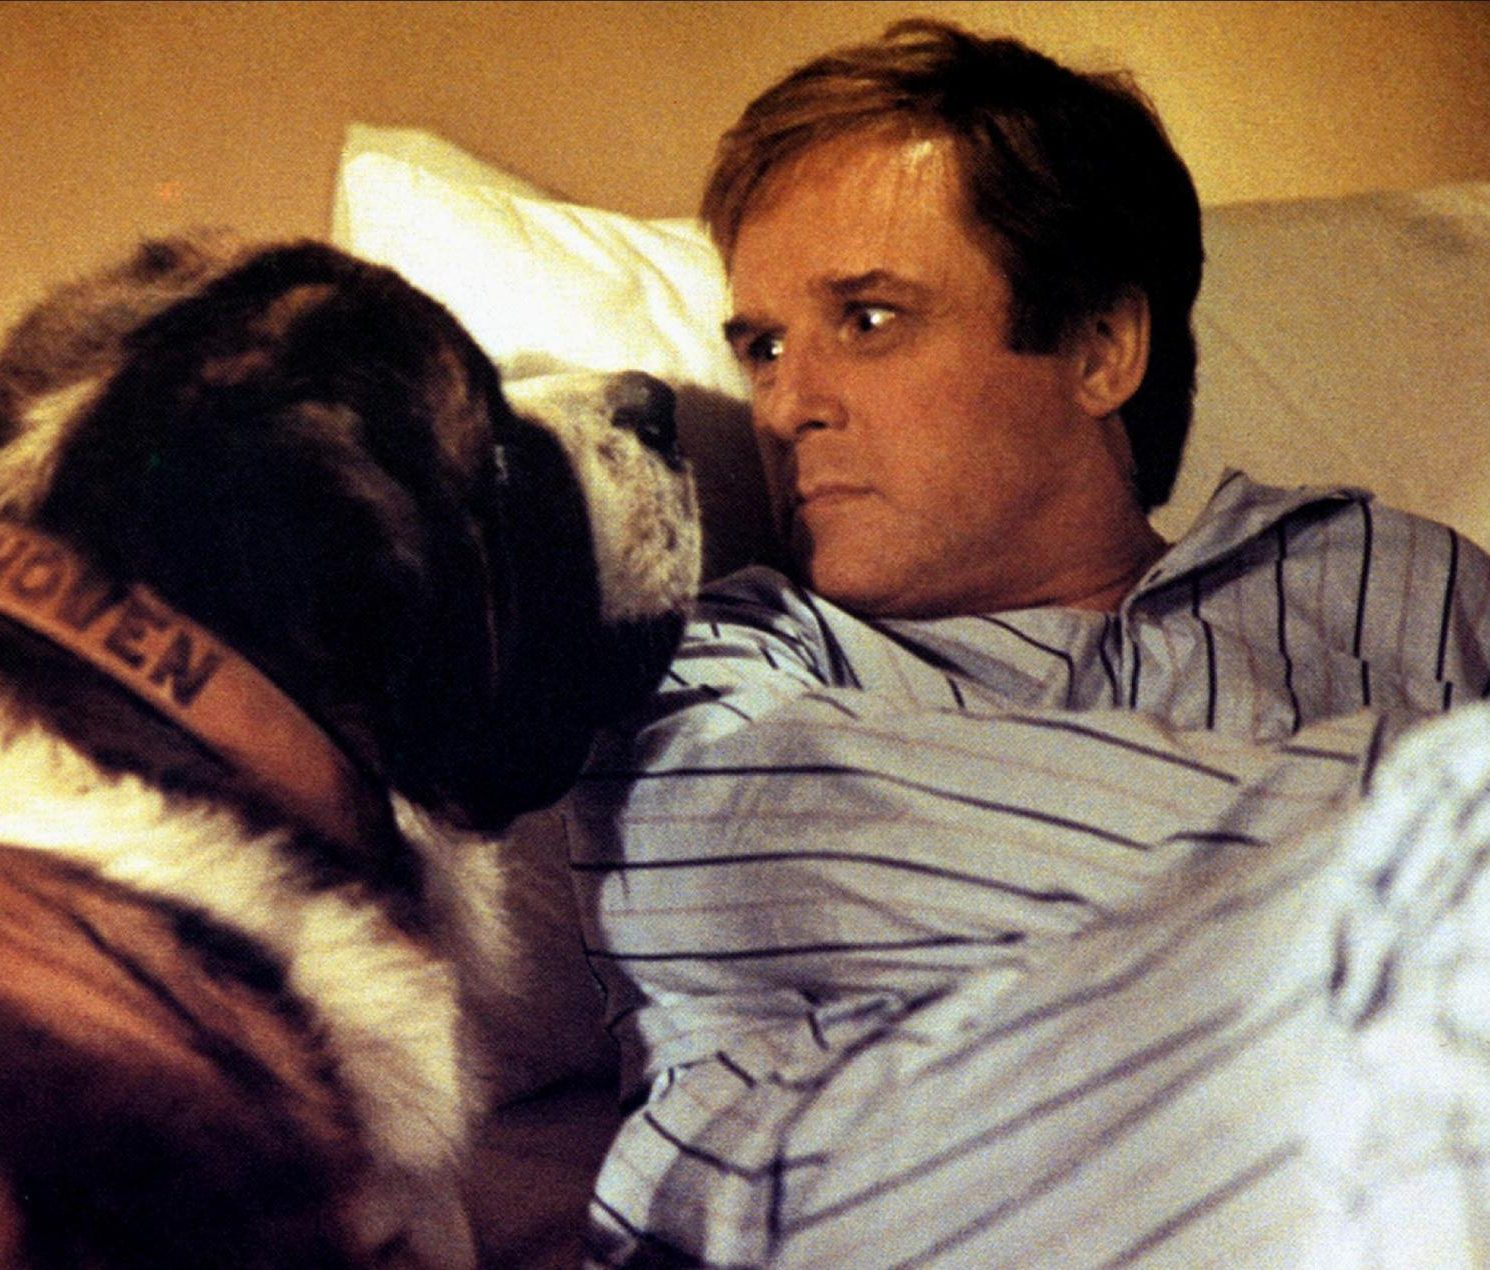 Charles Grodin beethoven 2000x1270 1 e1624025932332 10 Things You Never Knew About Charles Grodin